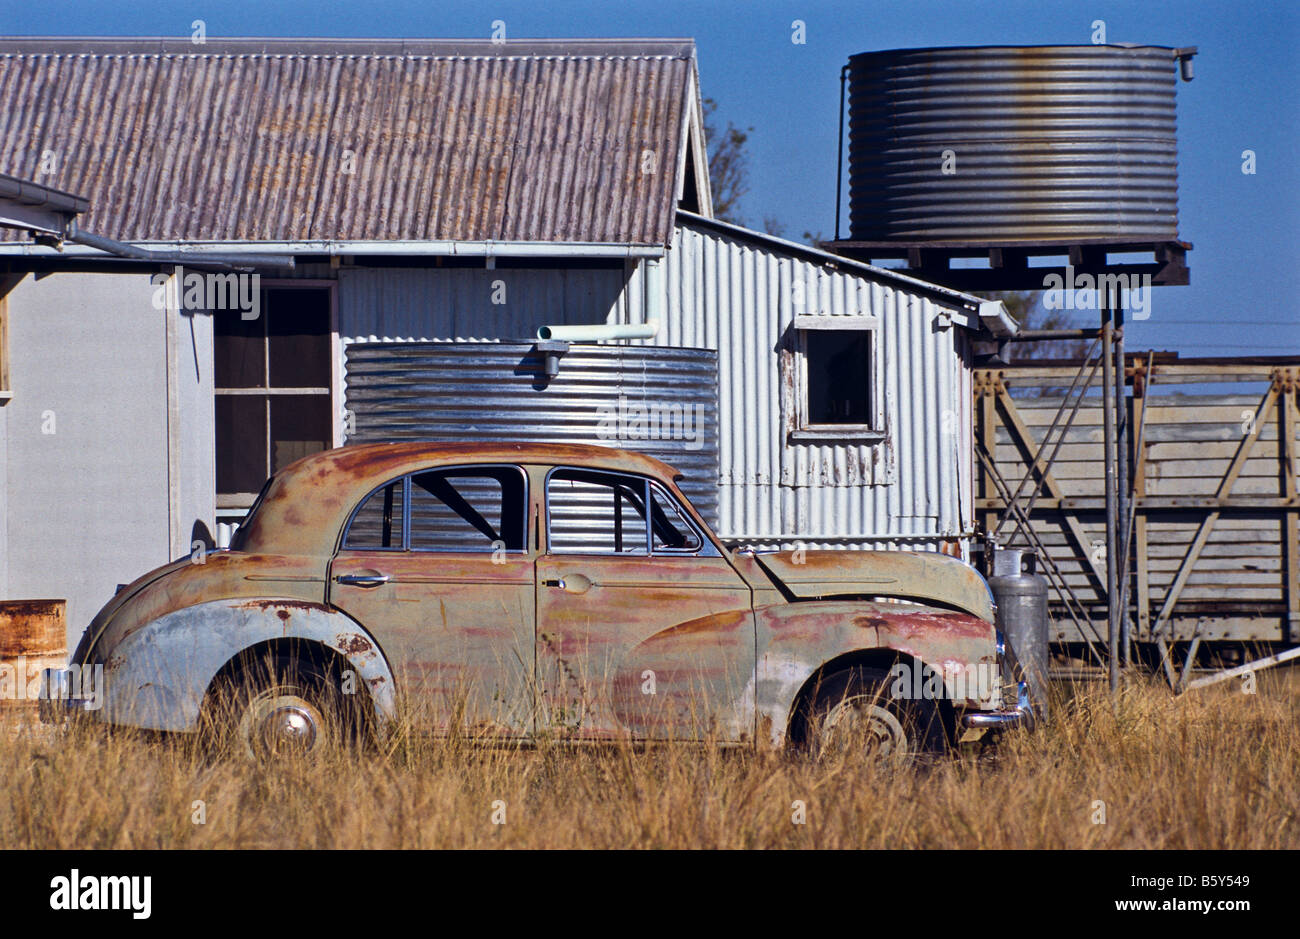 Old car and sheds, outback Australia - Stock Image